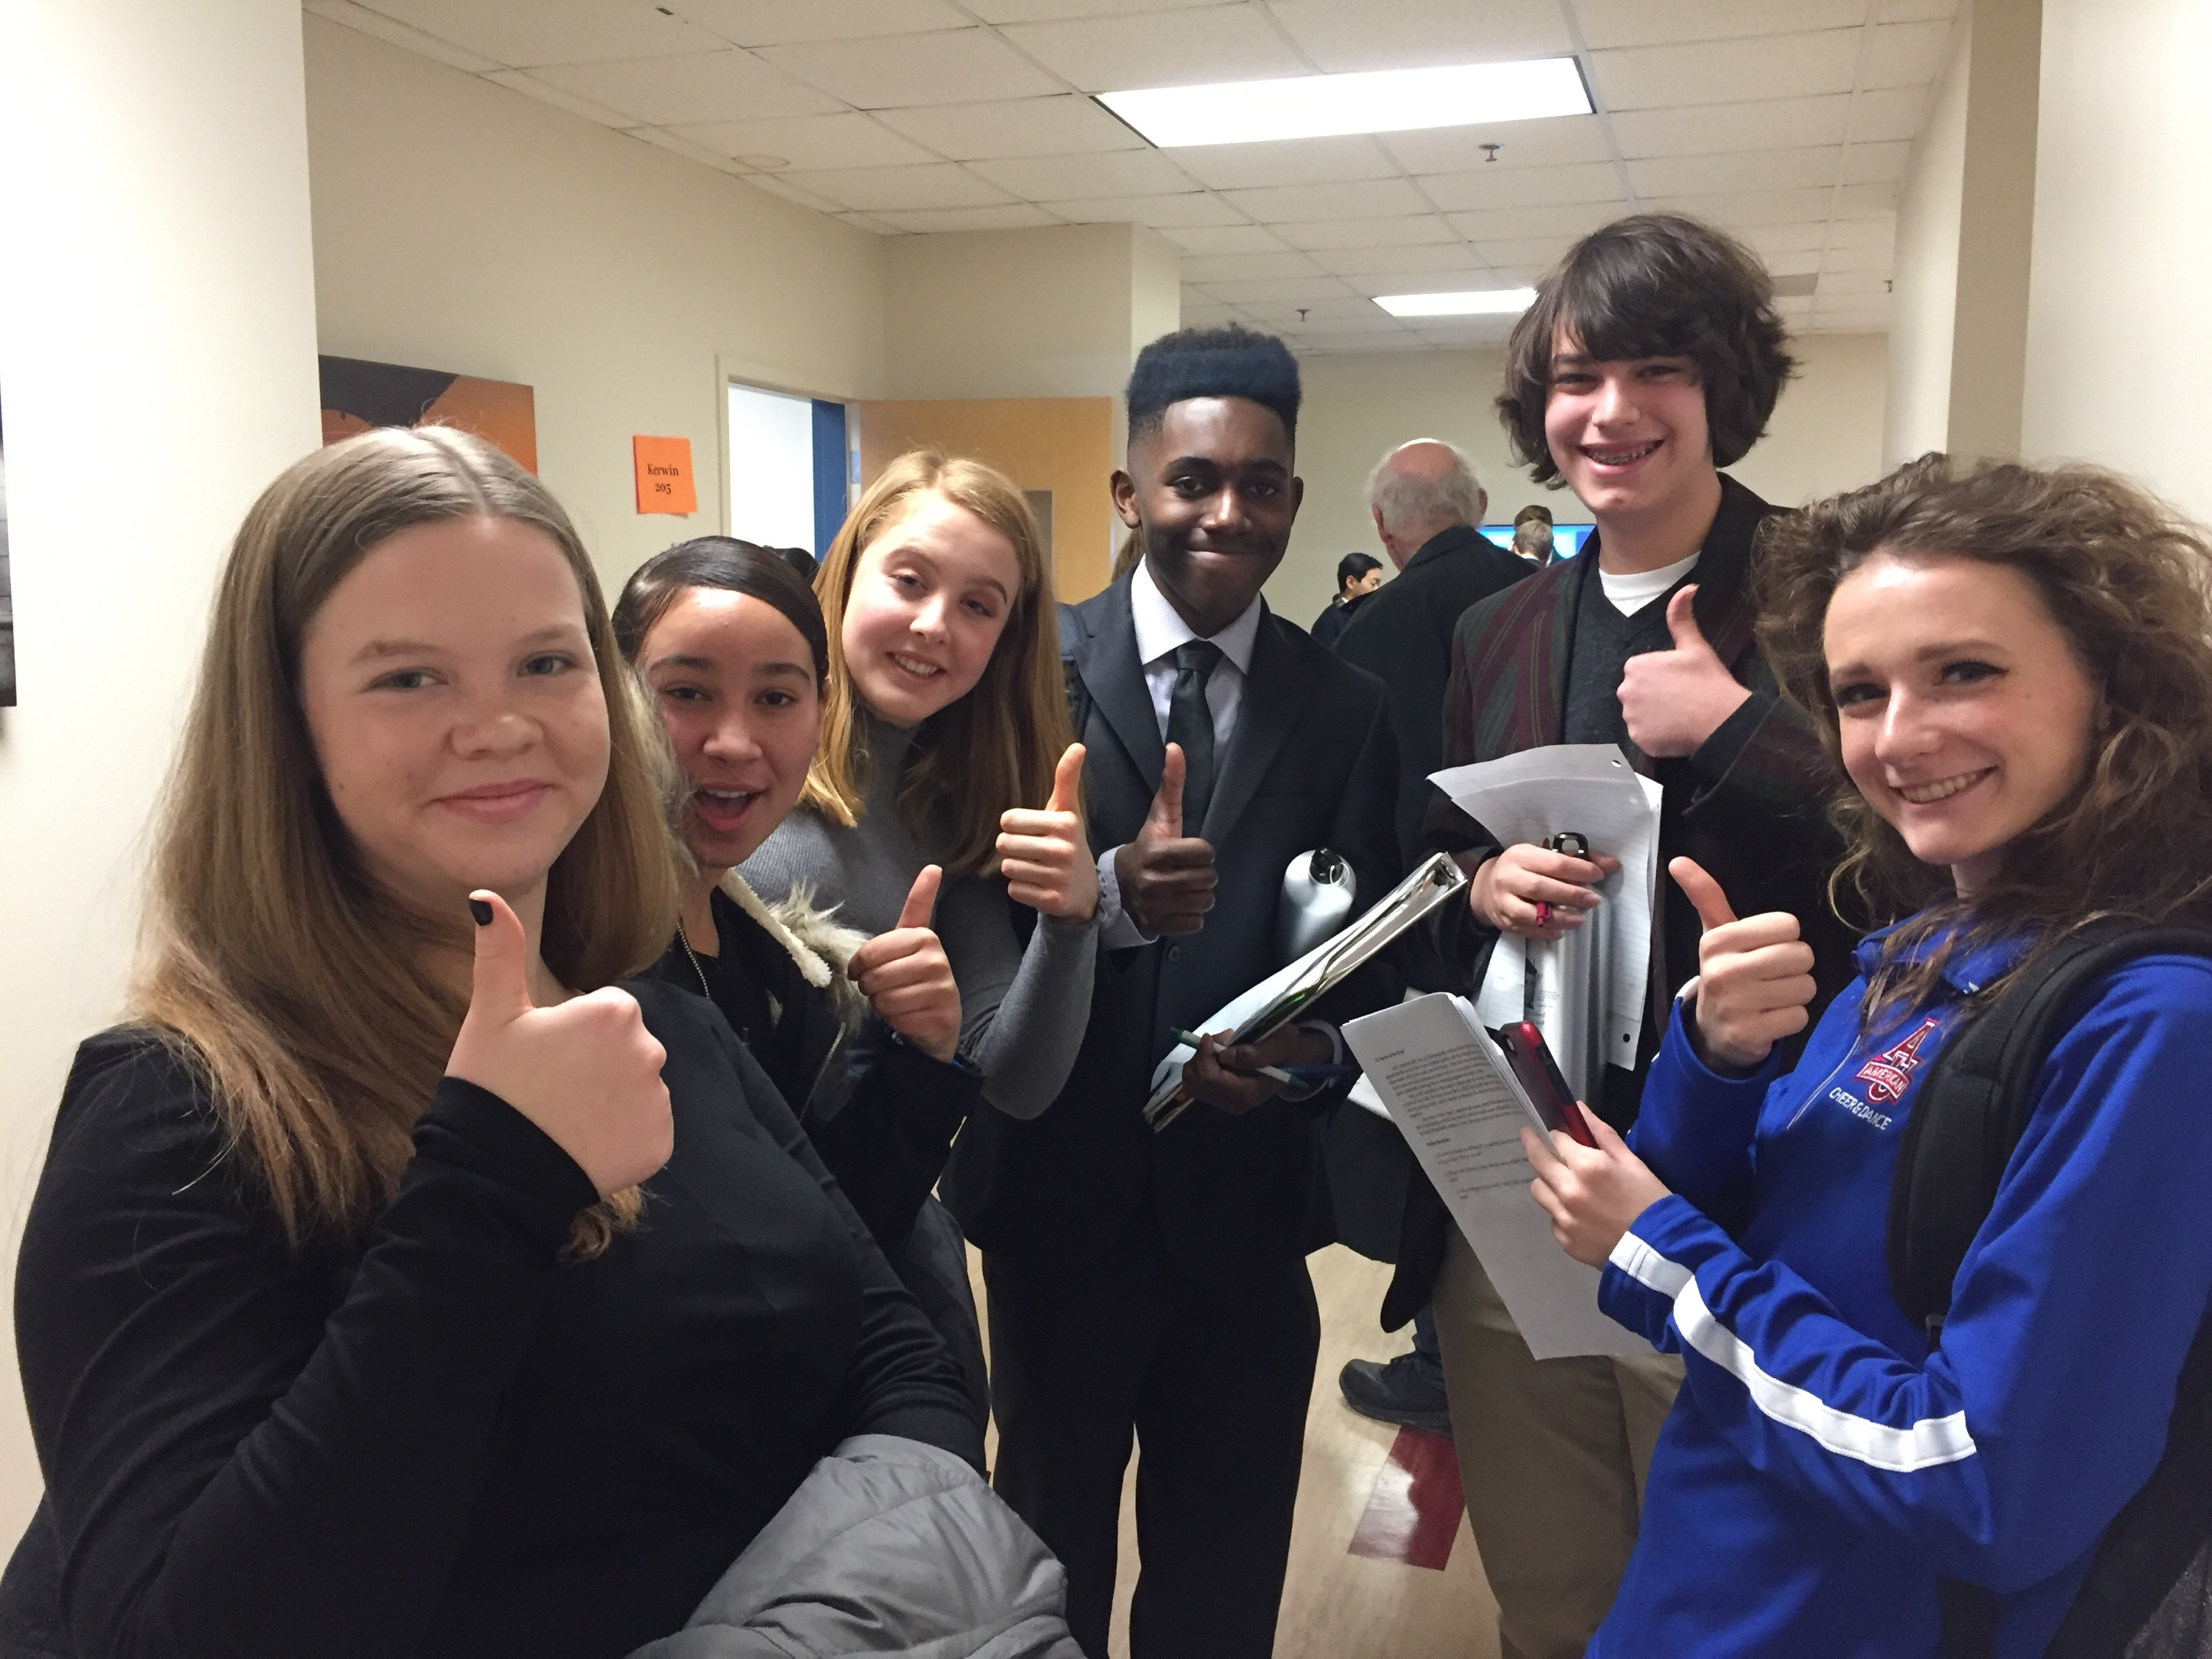 Ethics Bowl Team left unsatisfied after loss at tournament